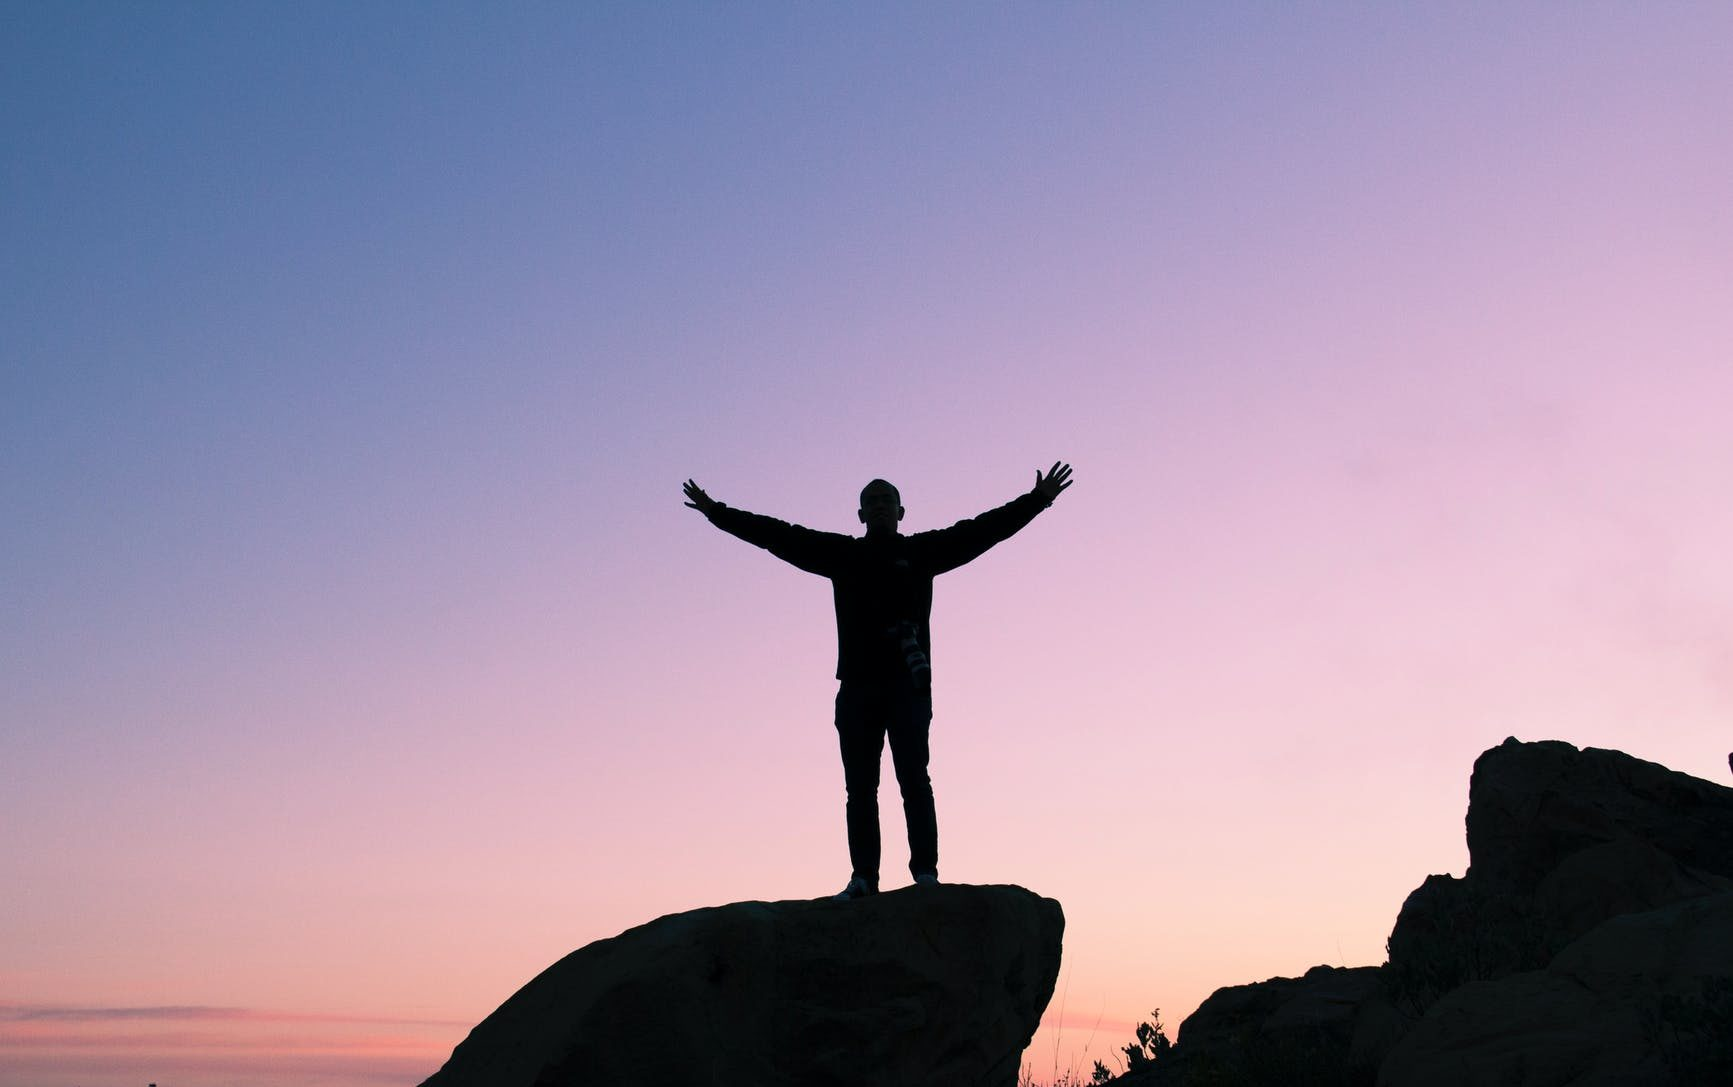 man standing on a rock with his arms outstretched to the sides in front of a sunset